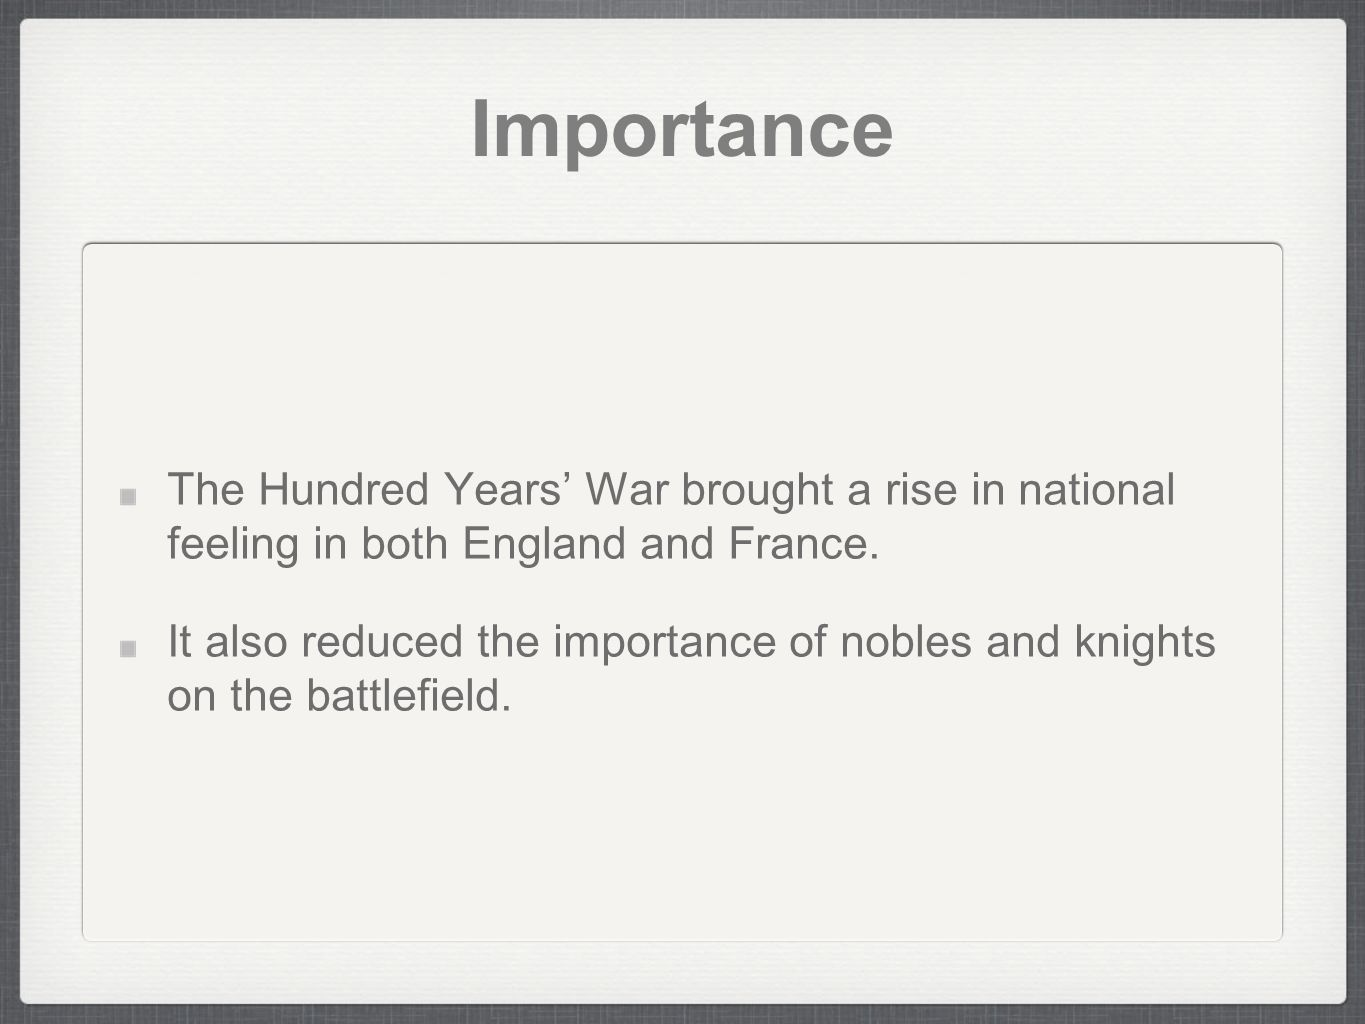 Importance The Hundred Years' War brought a rise in national feeling in both England and France.